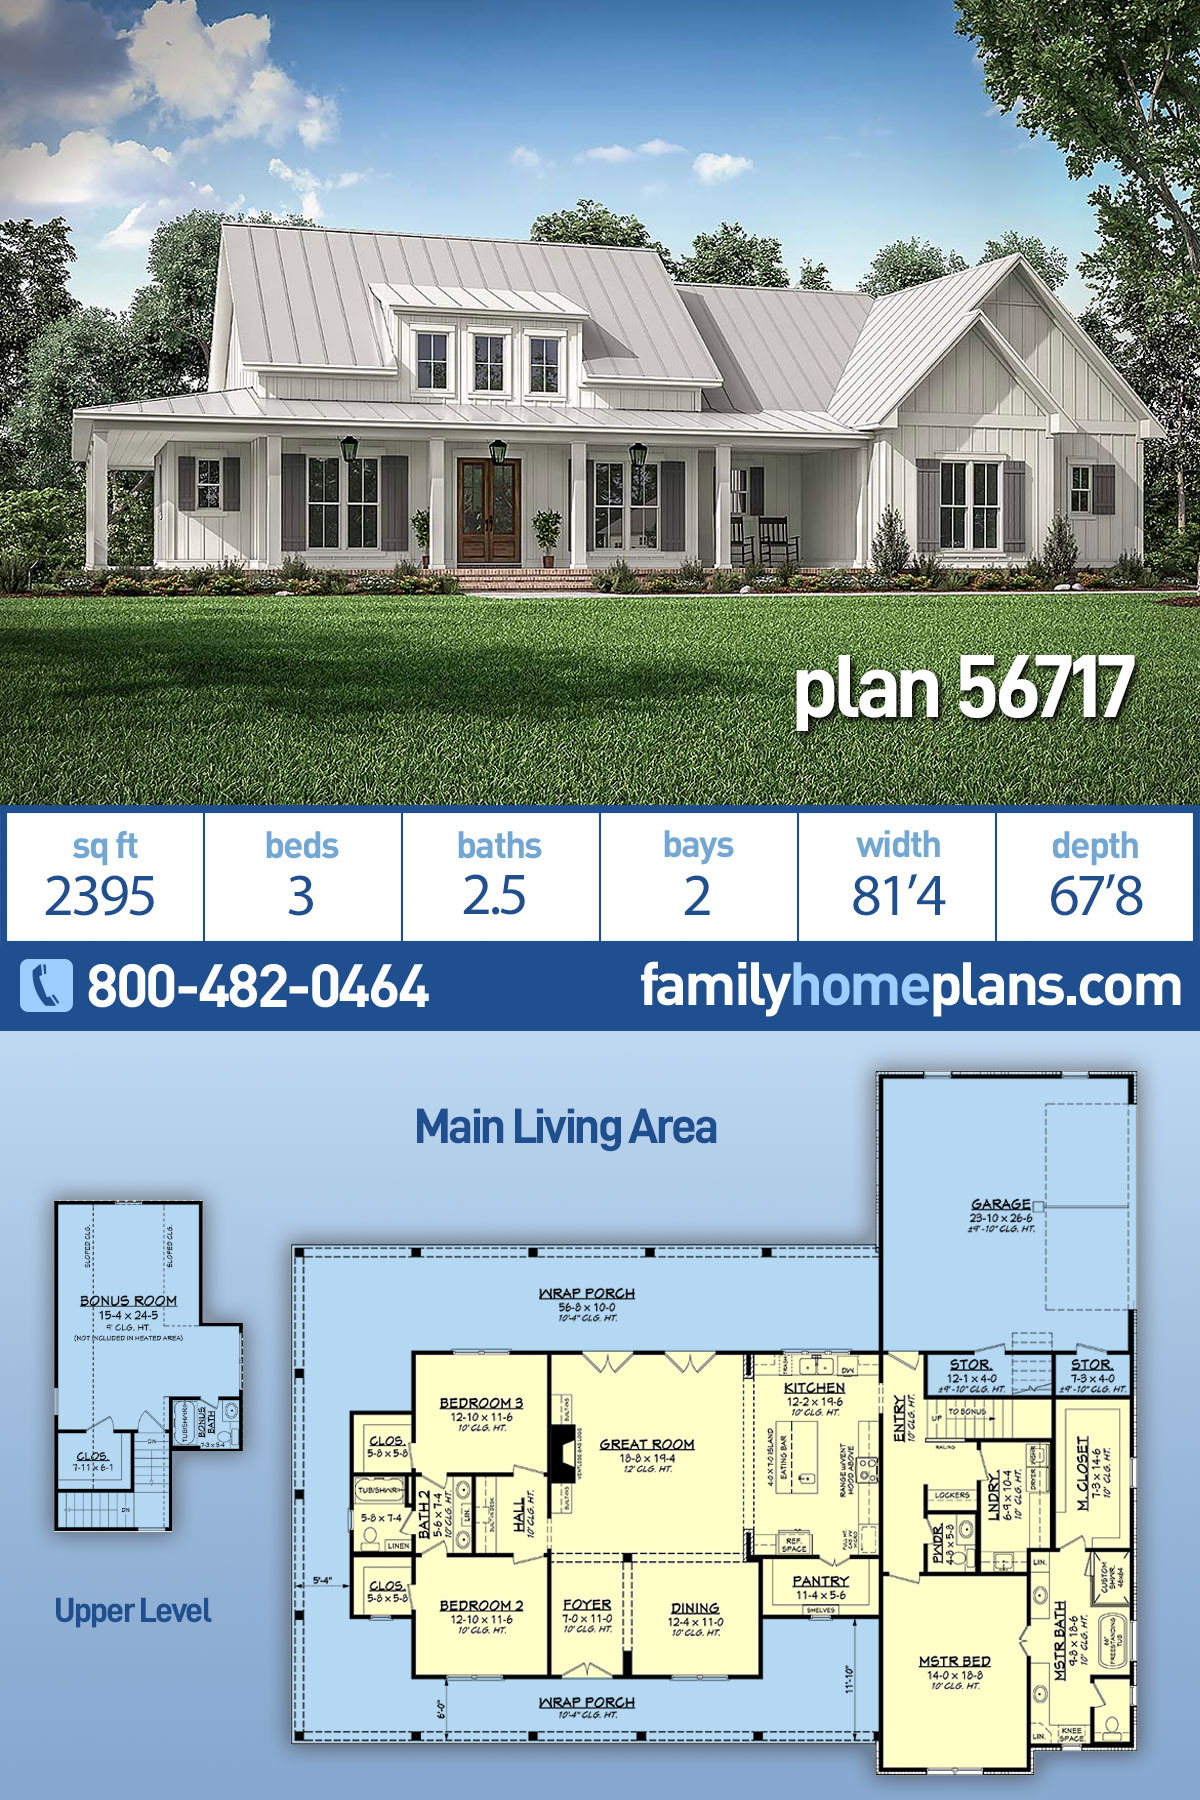 Brand New House Plans Awesome Farmhouse Style House Plan with 3 Bed 3 Bath 2 Car Garage